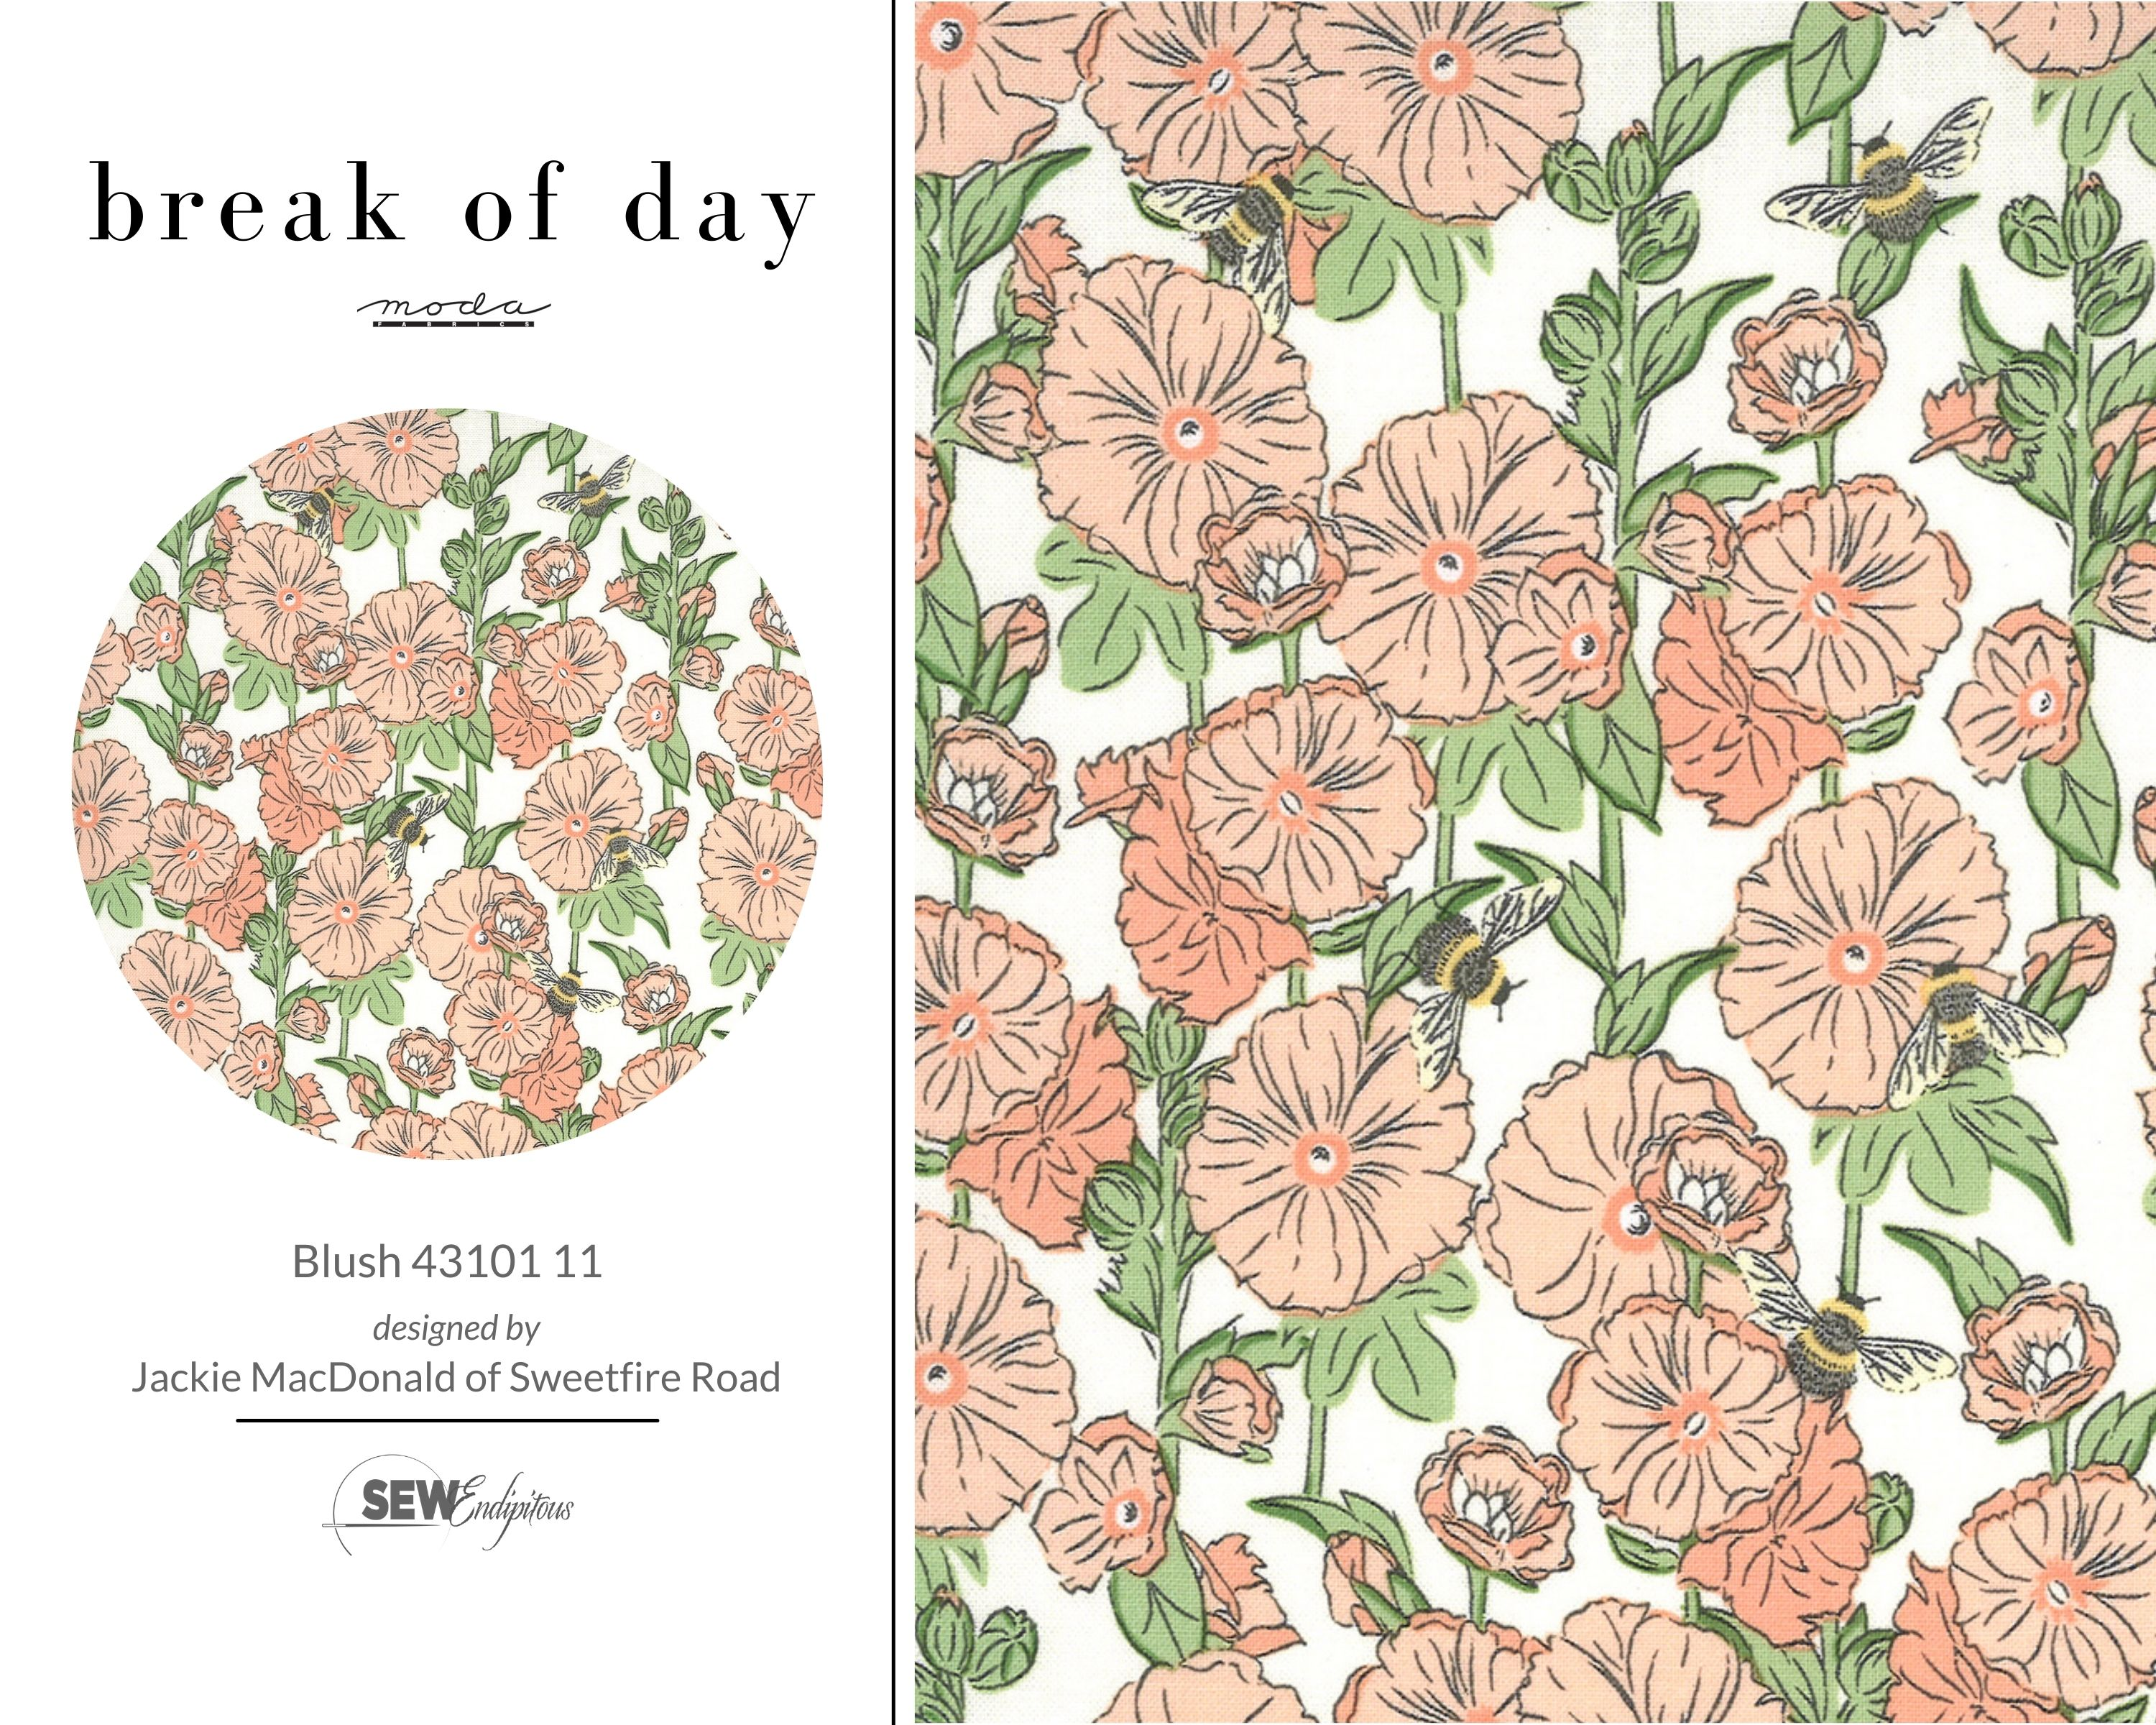 Break Of Day - Blush 43101 11